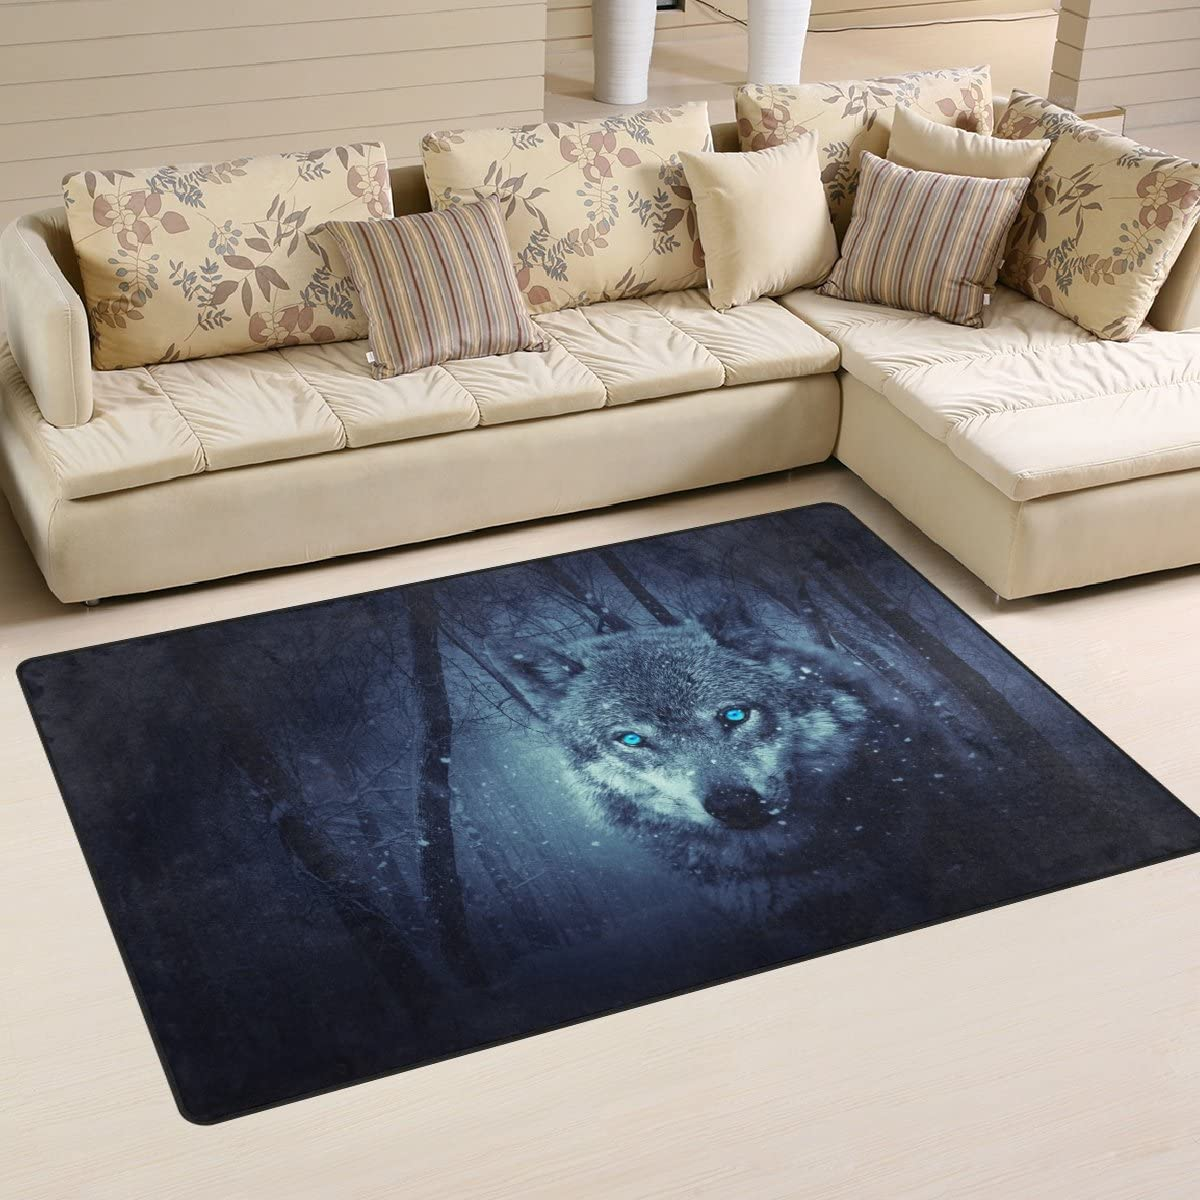 LORVIES Wolf Forest Area Rug Carpet Non-Slip Floor Mat Doormats Living Room Bedroom 60 x 39 inches